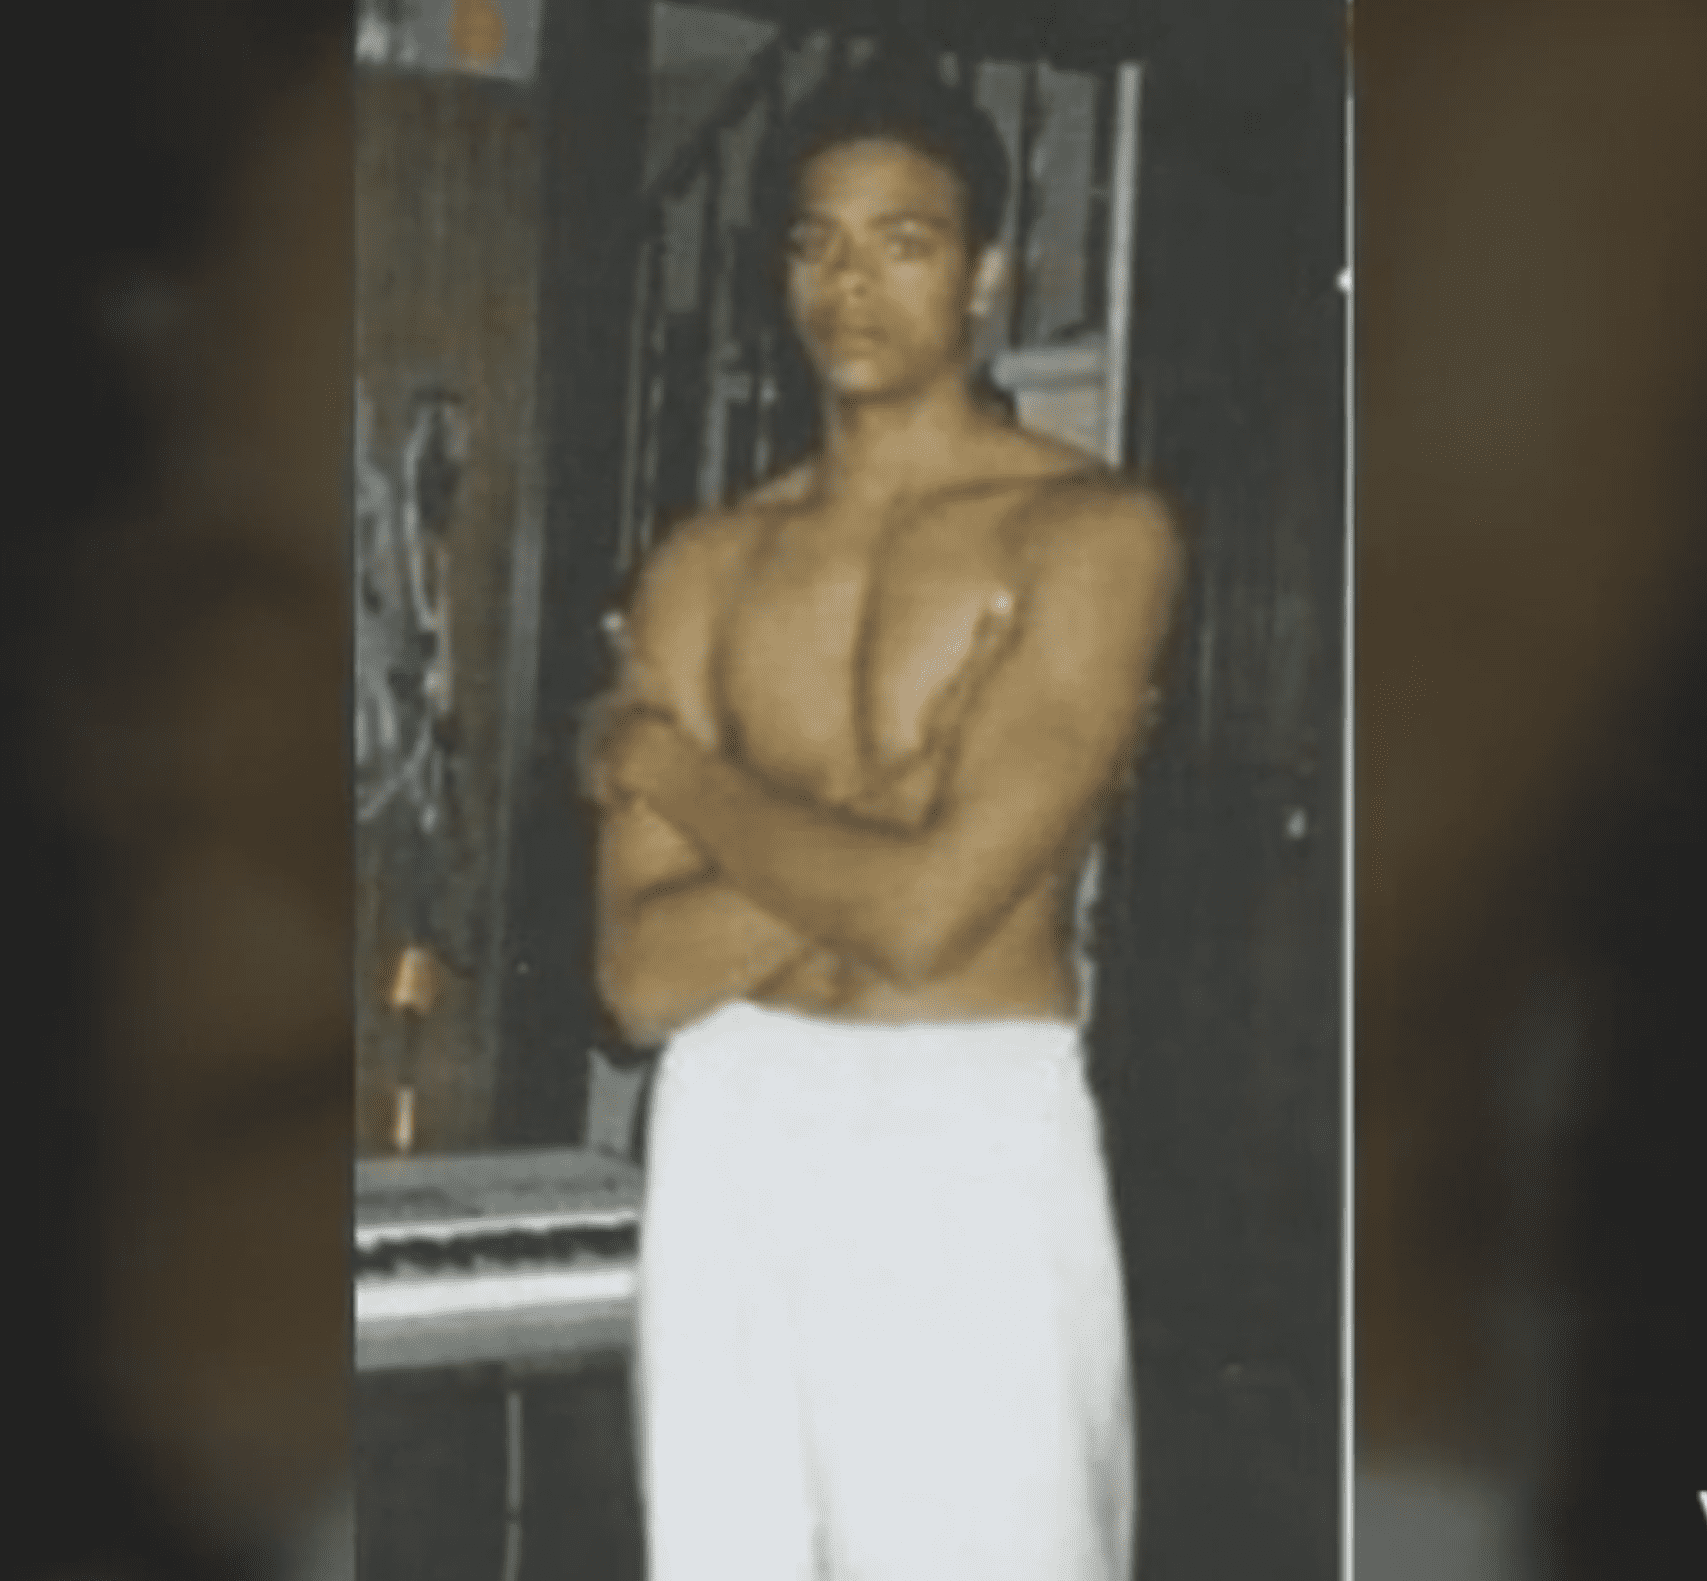 A photo of Lloyd Avery from Life story of Lloyd Avery II. | Photo: YouTube/Everything Entertainment